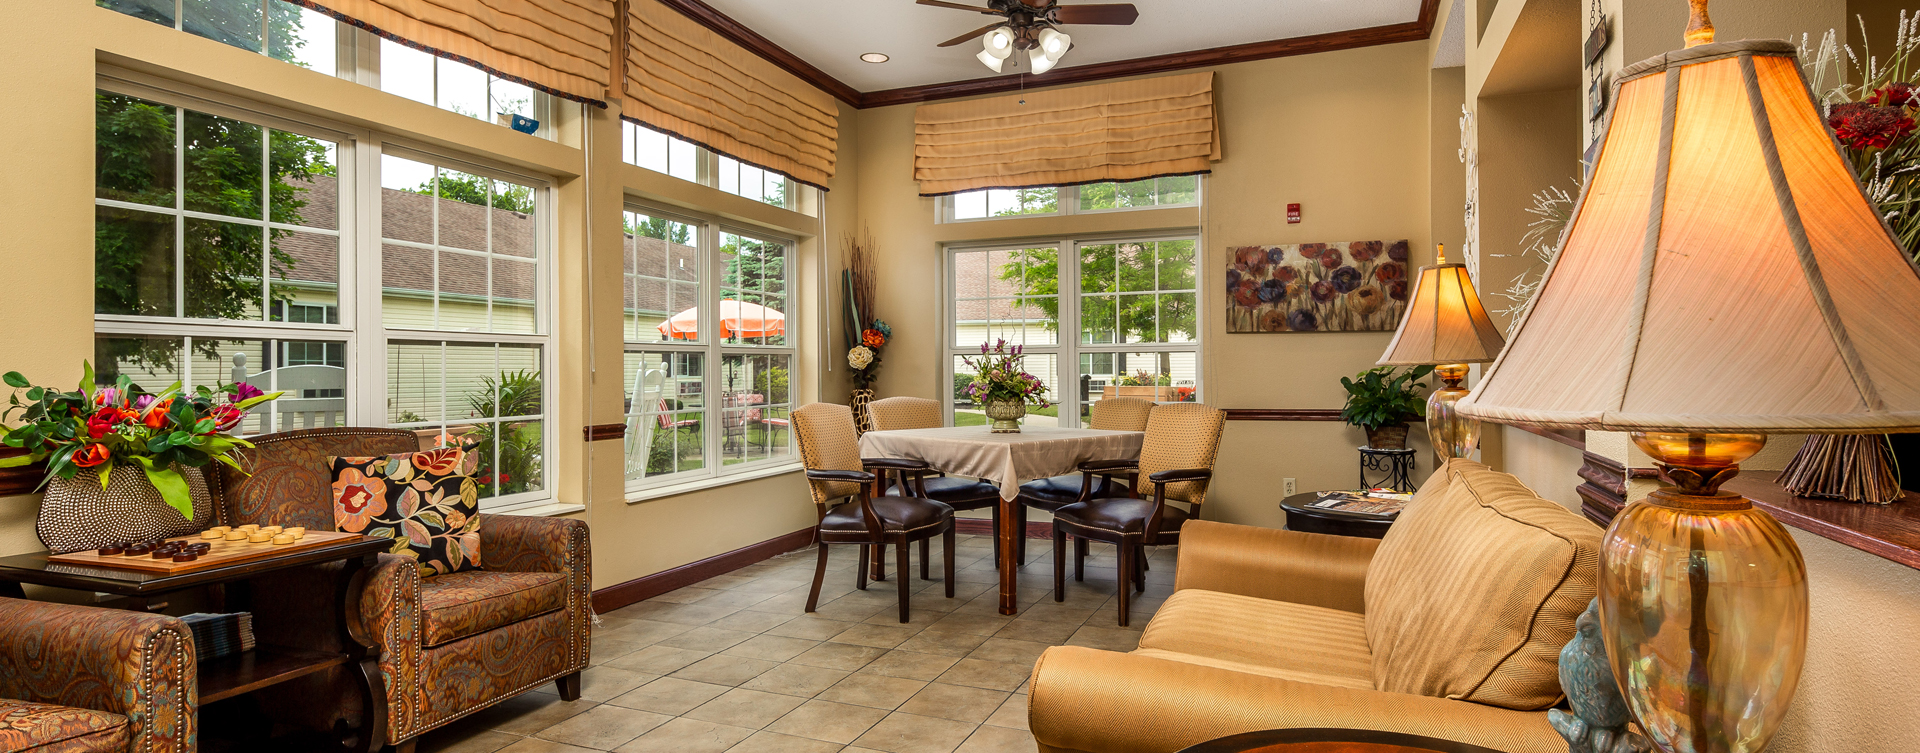 Curl up with a good book in the sunroom at Bickford of Battle Creek